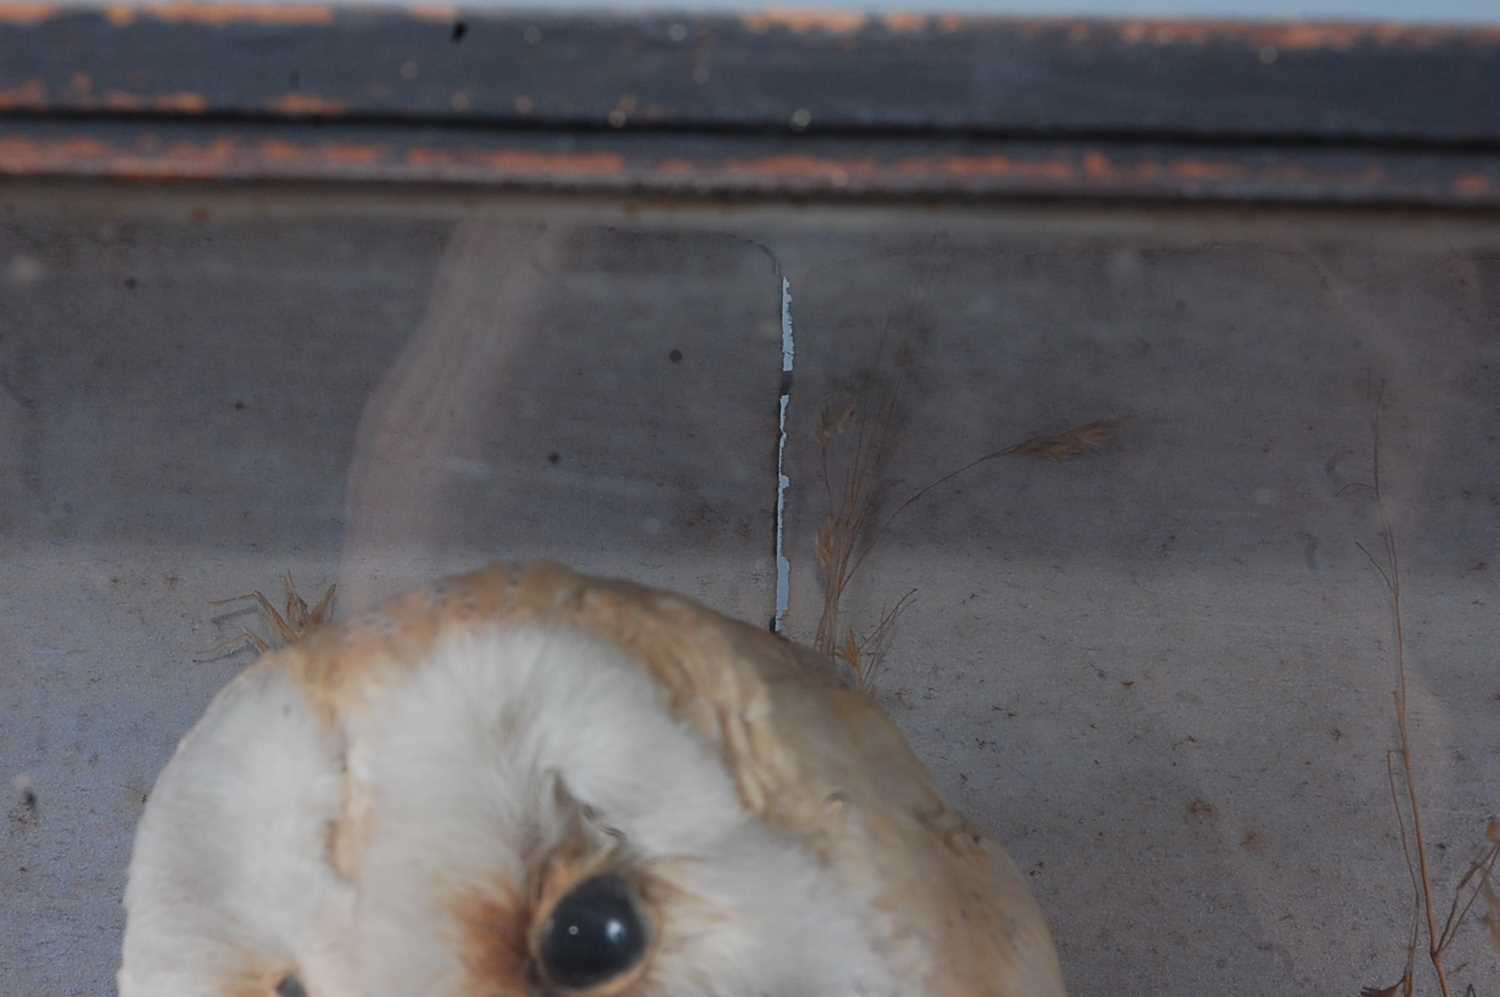 A brace of early 20th century taxidermy Barn owls (Tyto alba), each mounted facing the other in a - Image 2 of 9